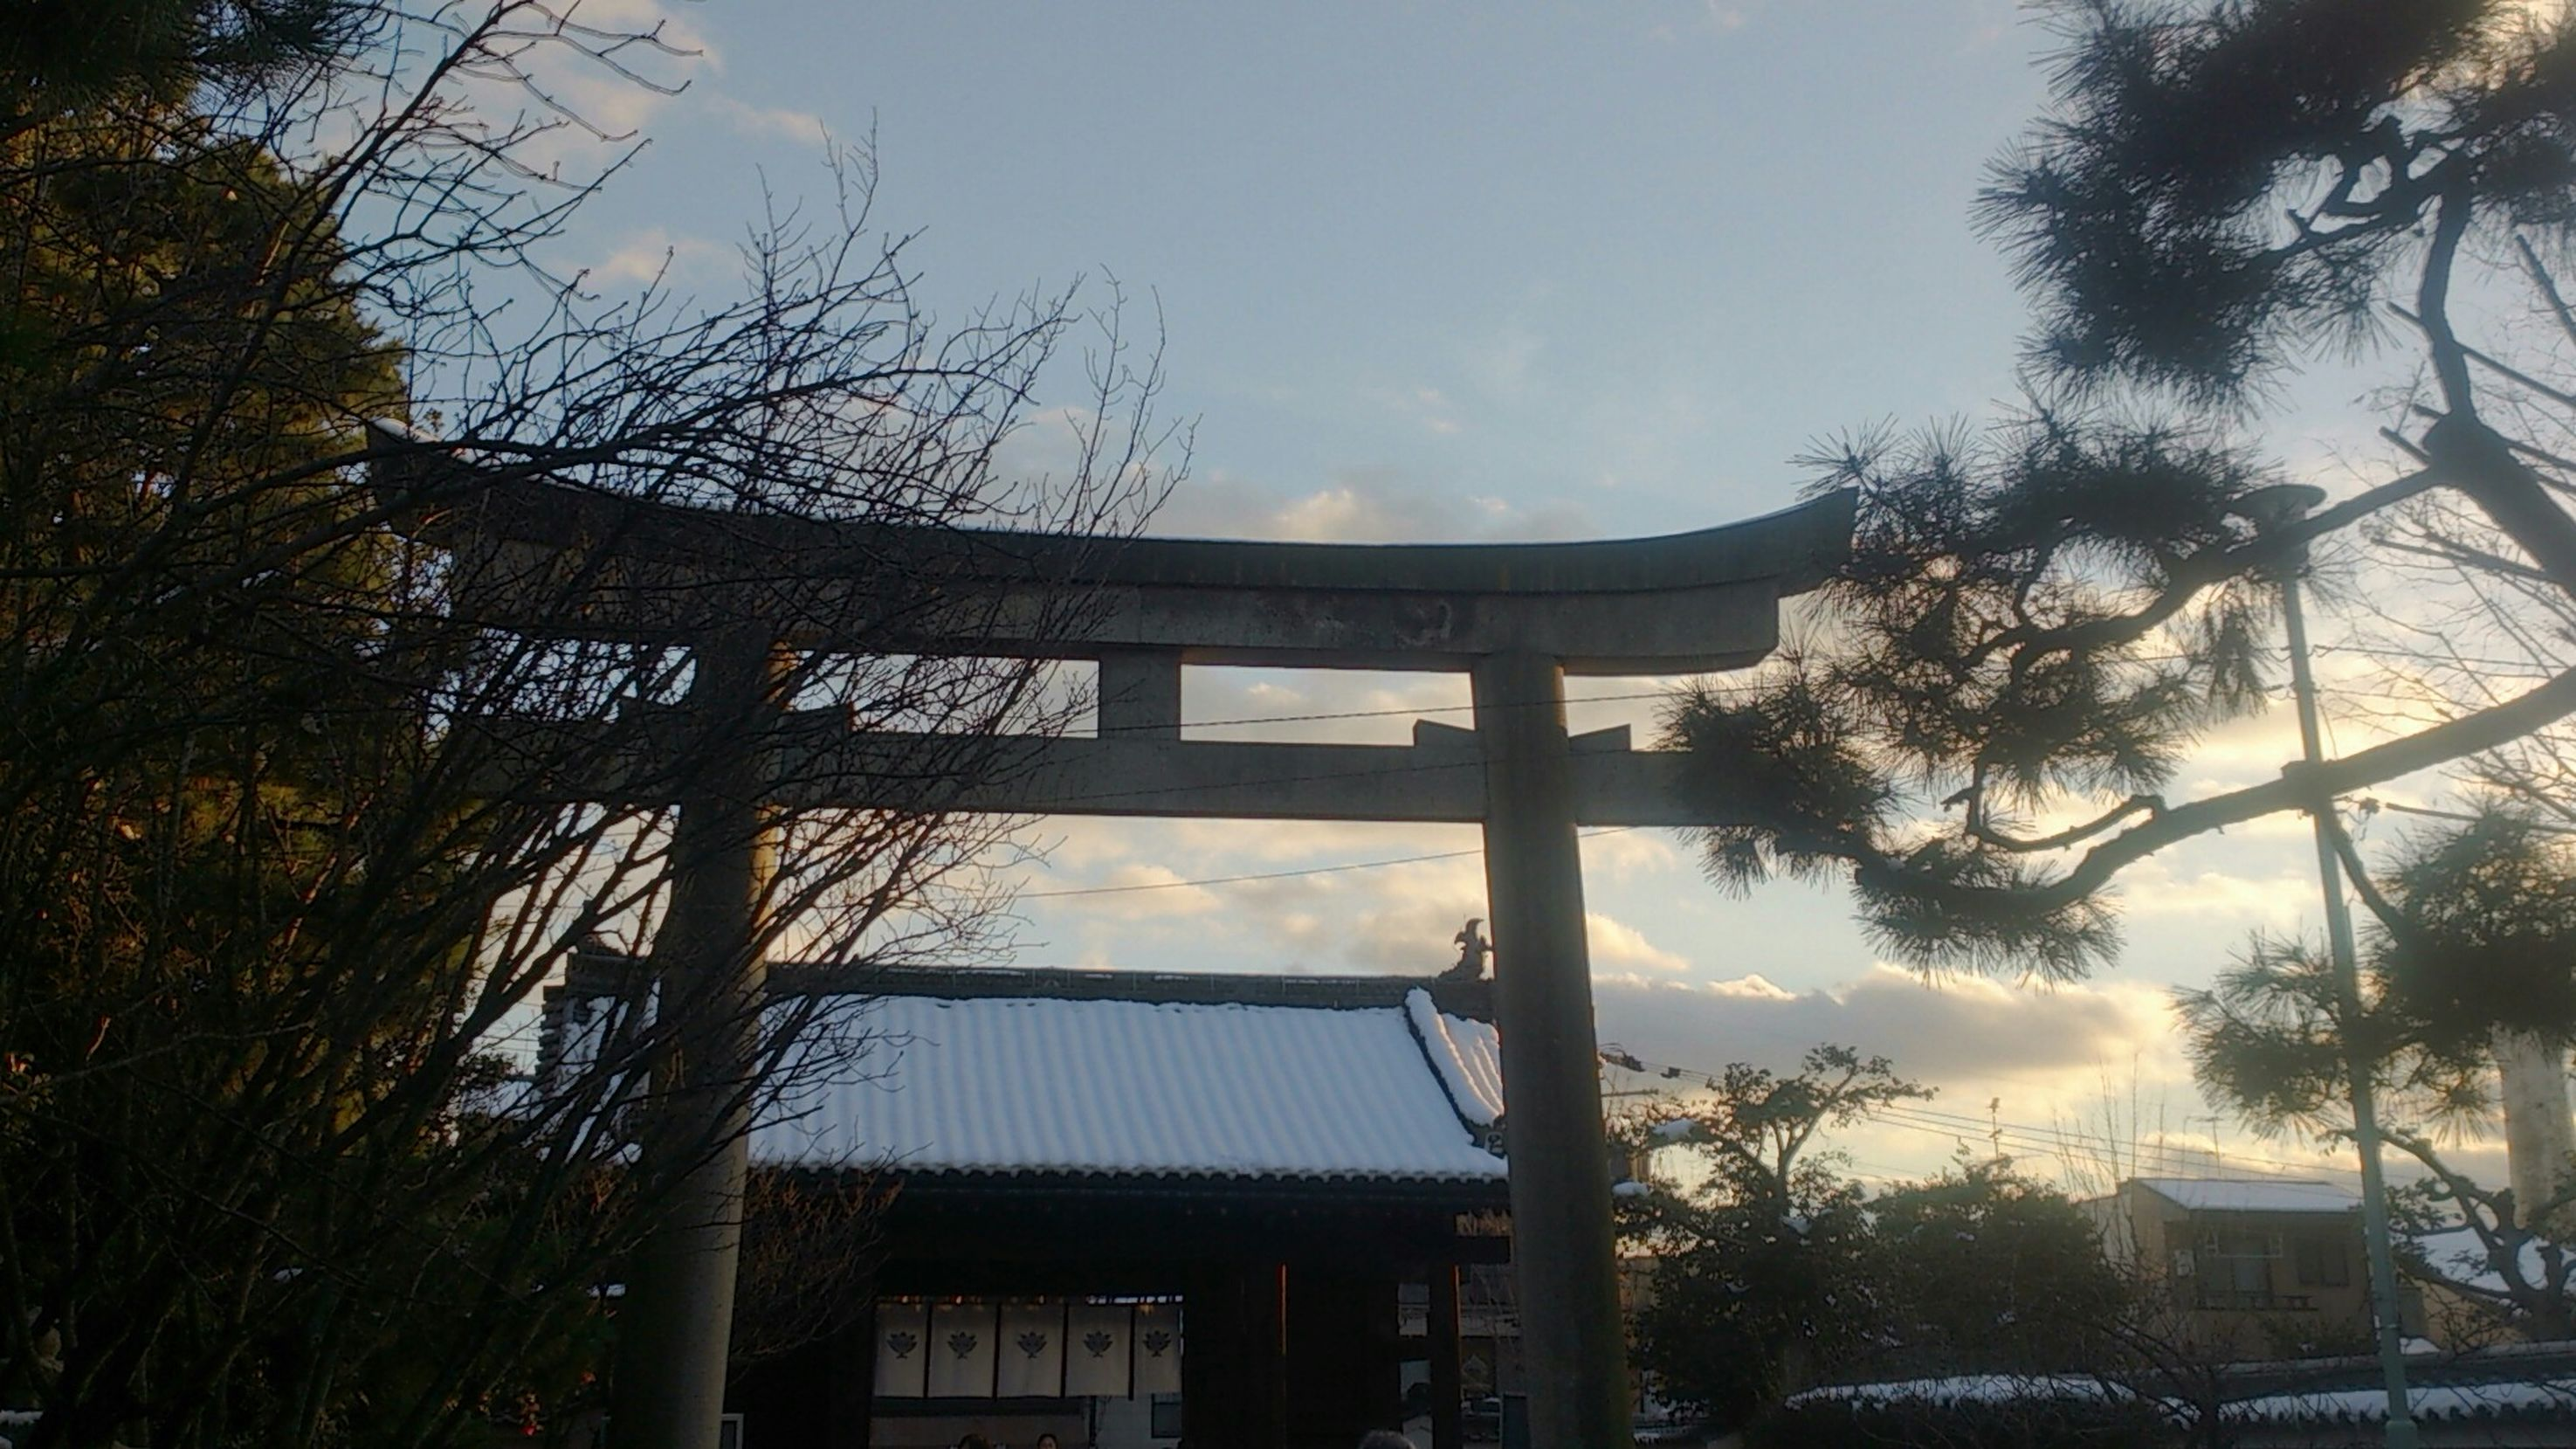 Happy New Year 2015 Japan Unusual Rera Snow Day In Kyoto At Shrine Hope For New Year Brace And Hope Sunset Sky And Clouds Sky